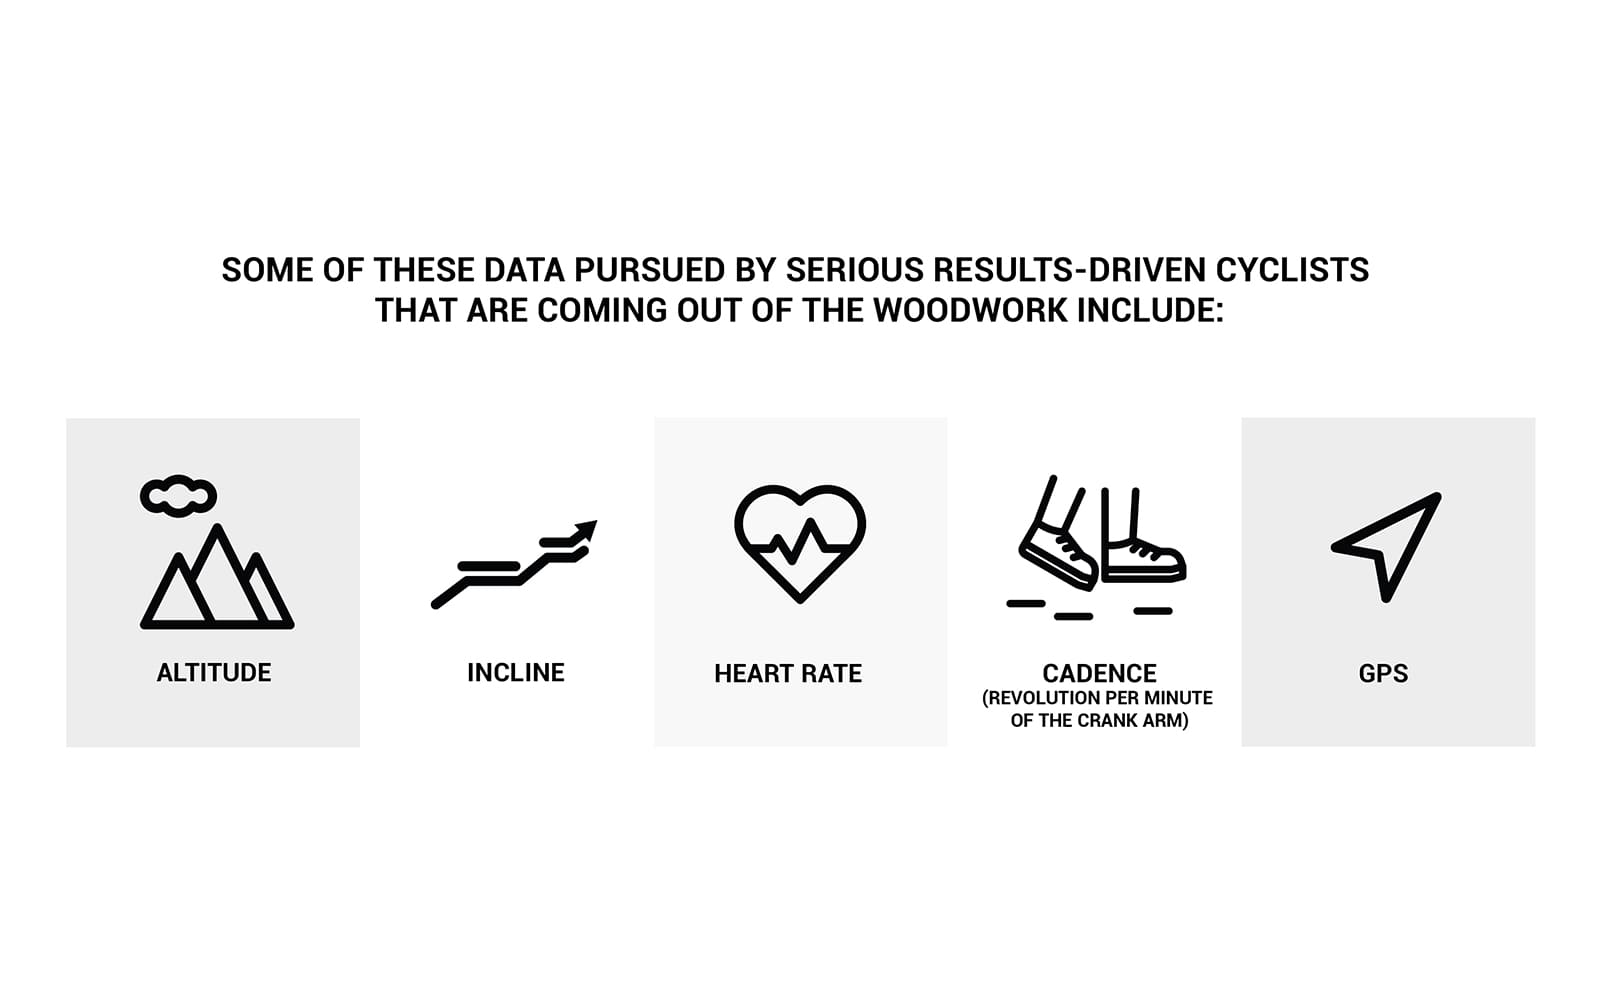 Most Pursued Data by Result driven cyclists